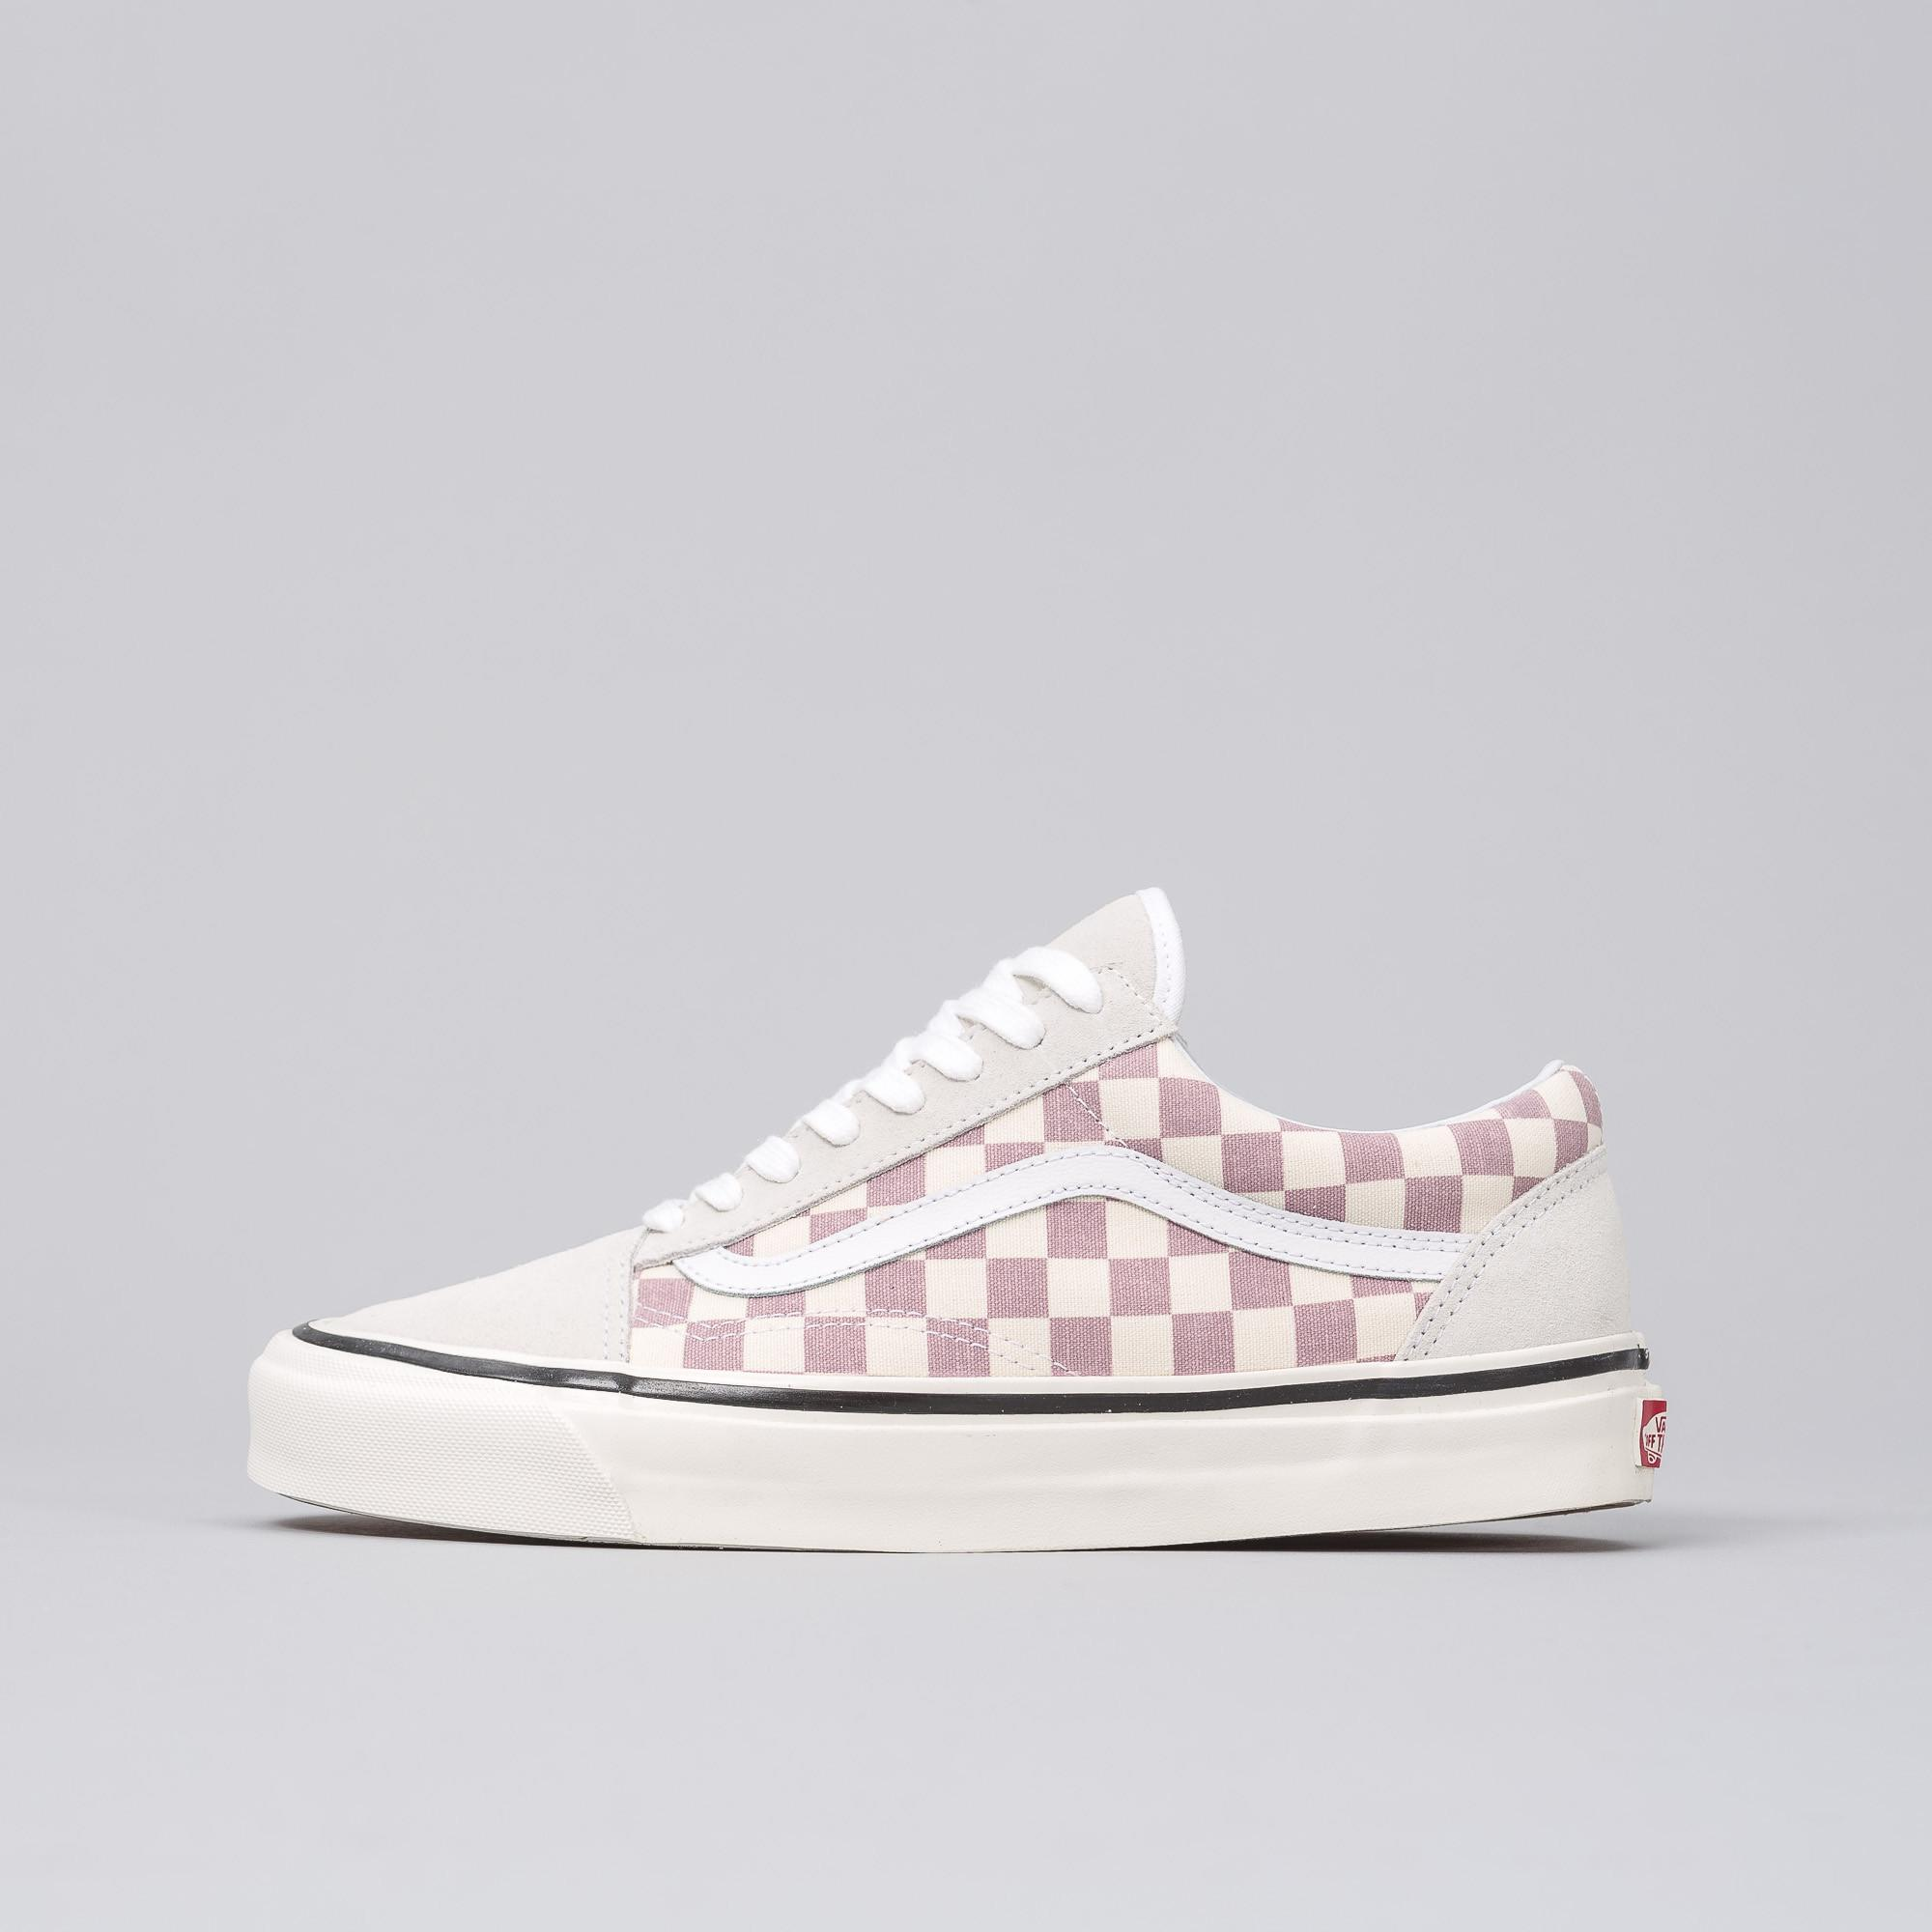 b9b637fcf56 Lyst - Vans Old Skool 36 Dx Anaheim Factory In Purple Checkerboard ...